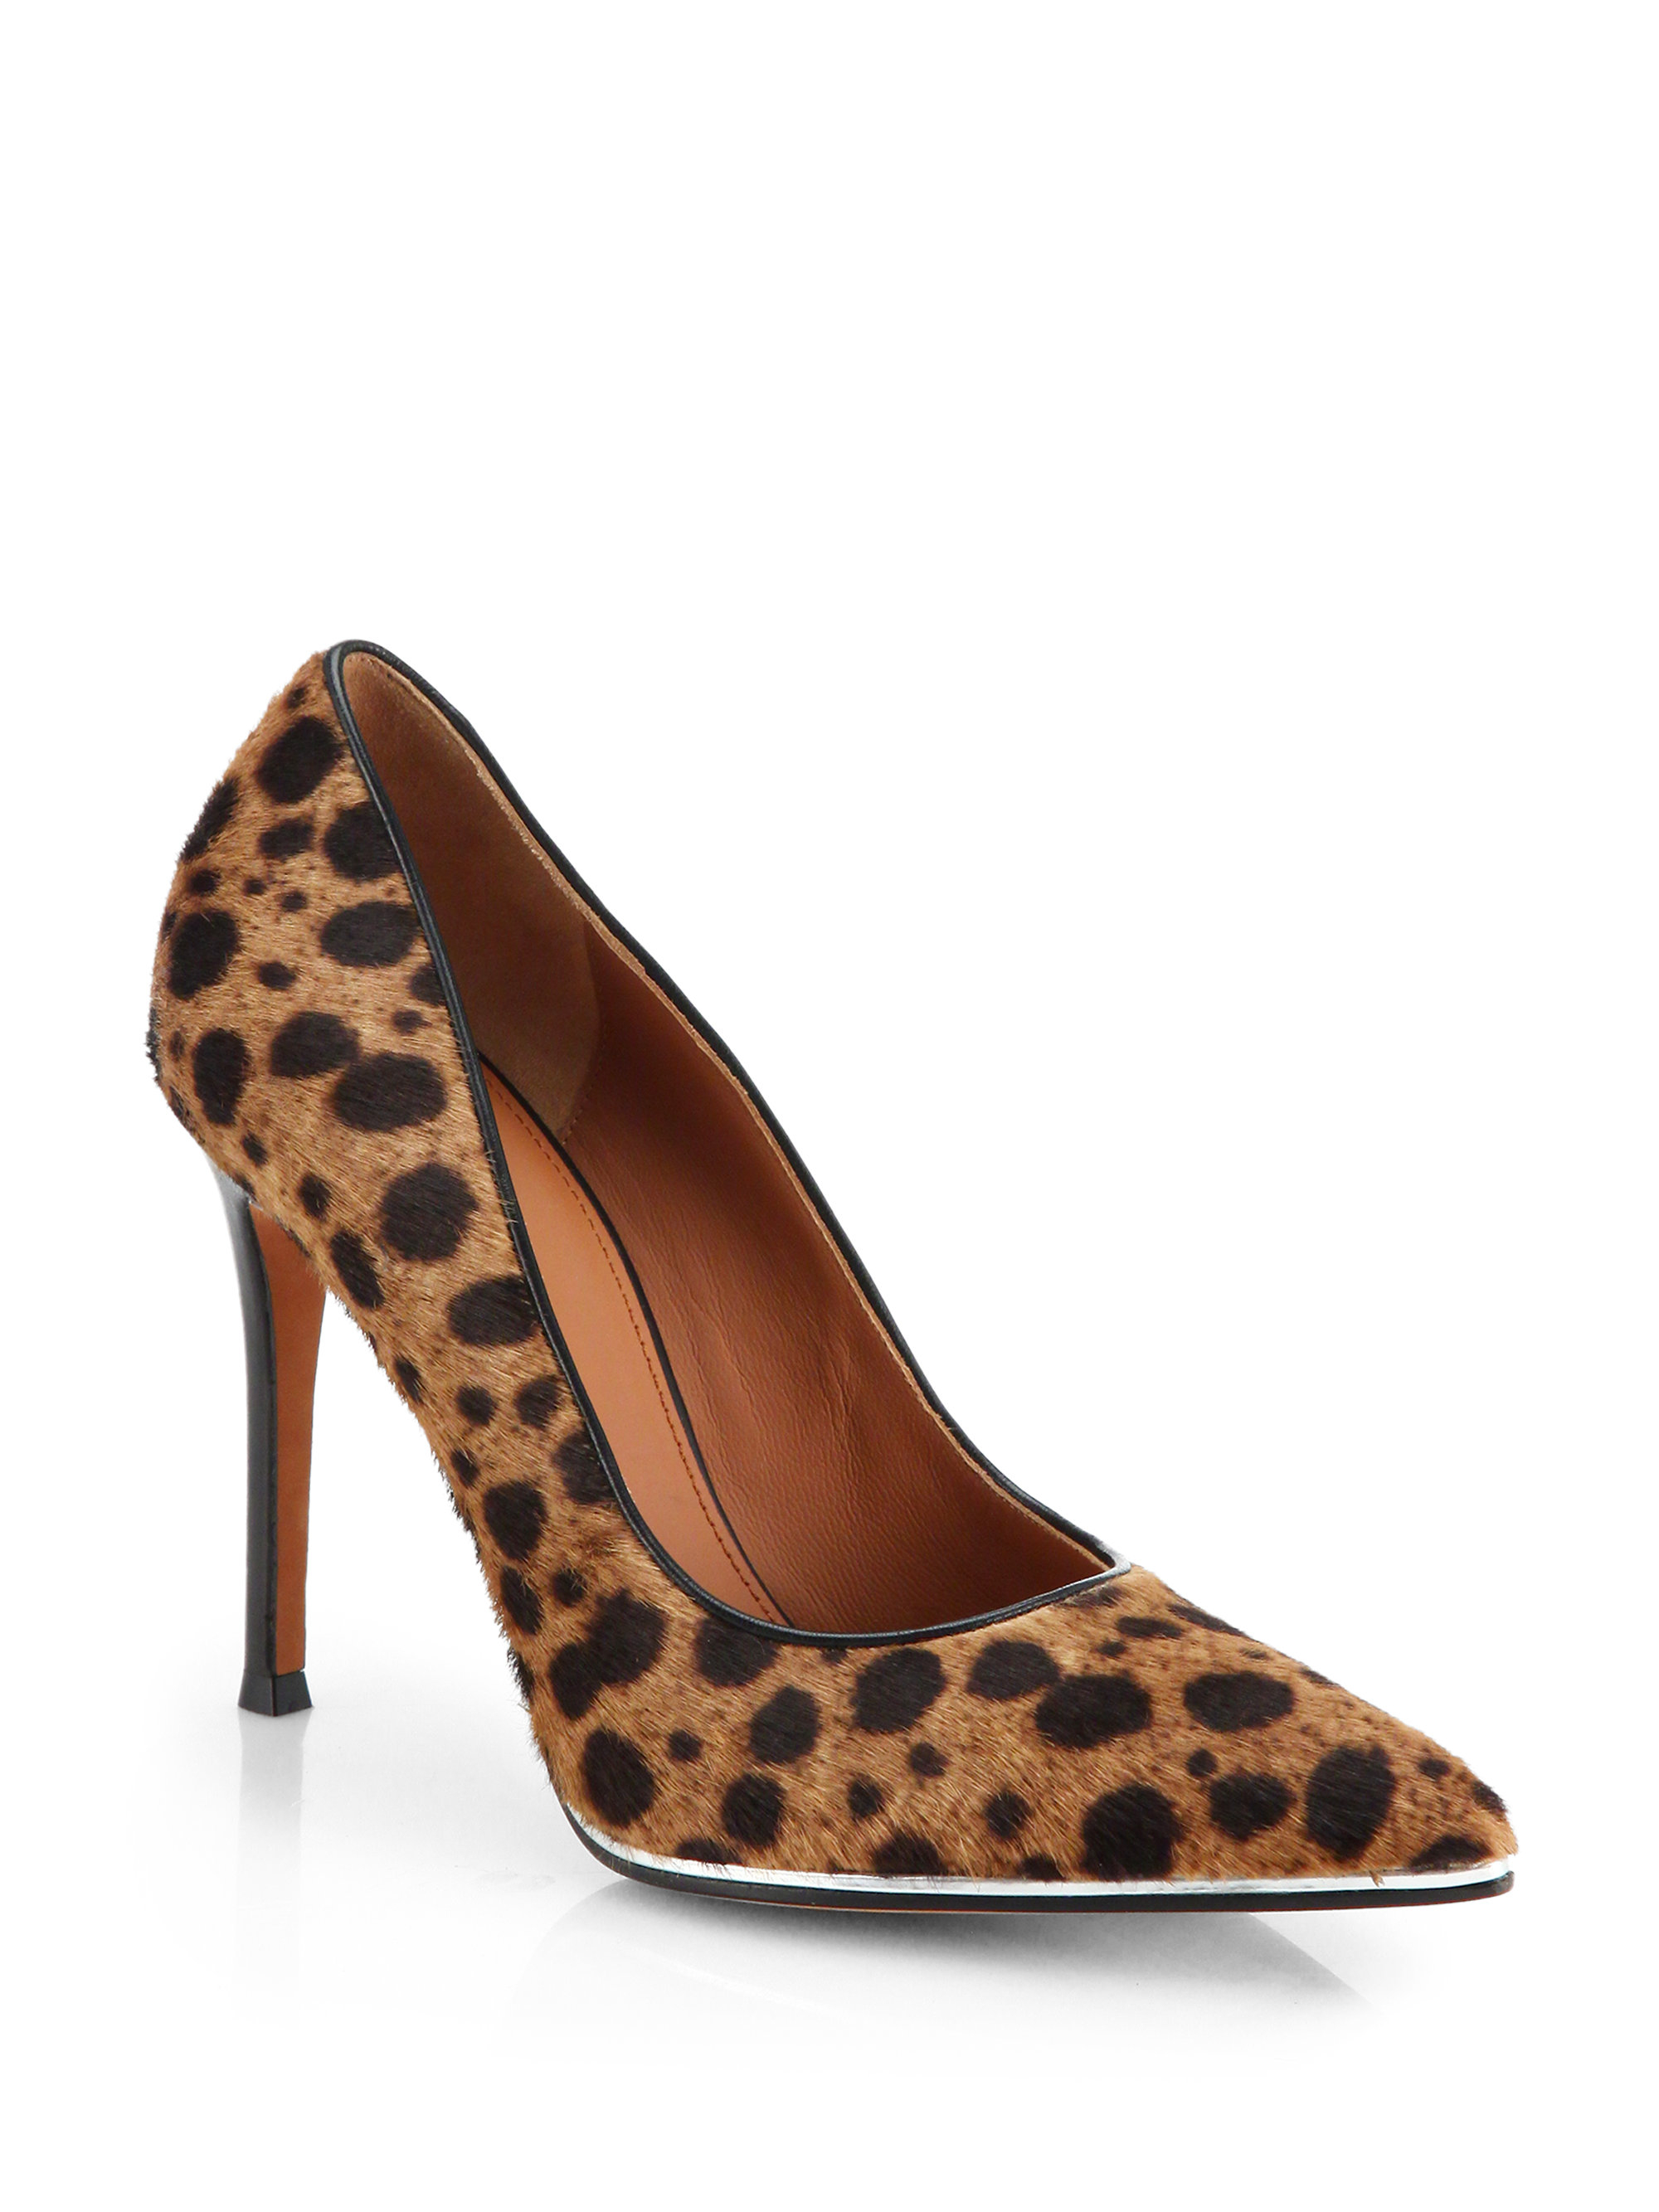 Givenchy Leopard Print Calf Hair Pumps Lyst